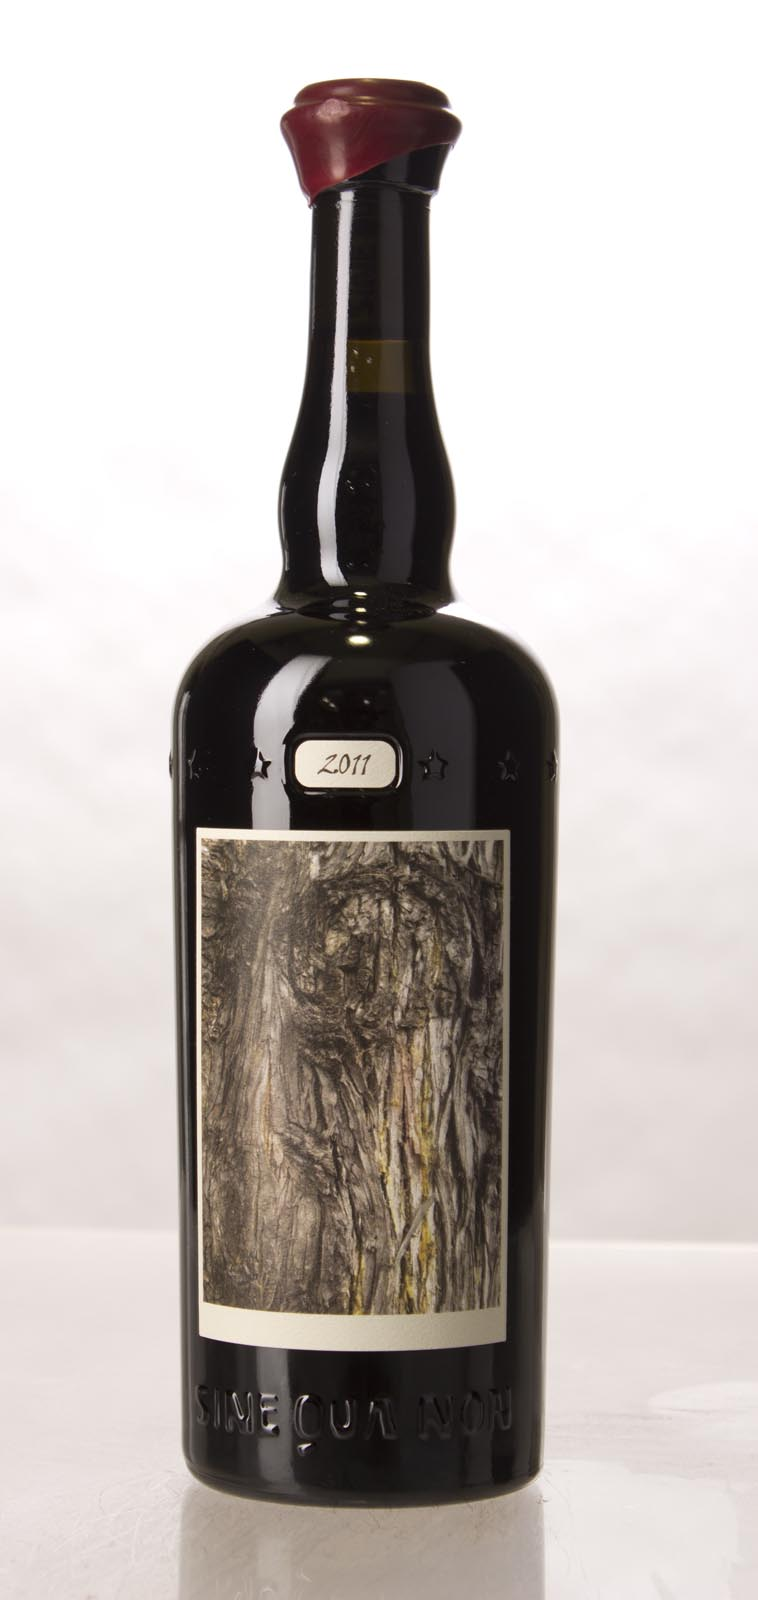 Sine Qua Non Syrah Patine Eleven Confessions Vineyard 2011, 750mL (WA98, VN96) from The BPW - Merchants of rare and fine wines.